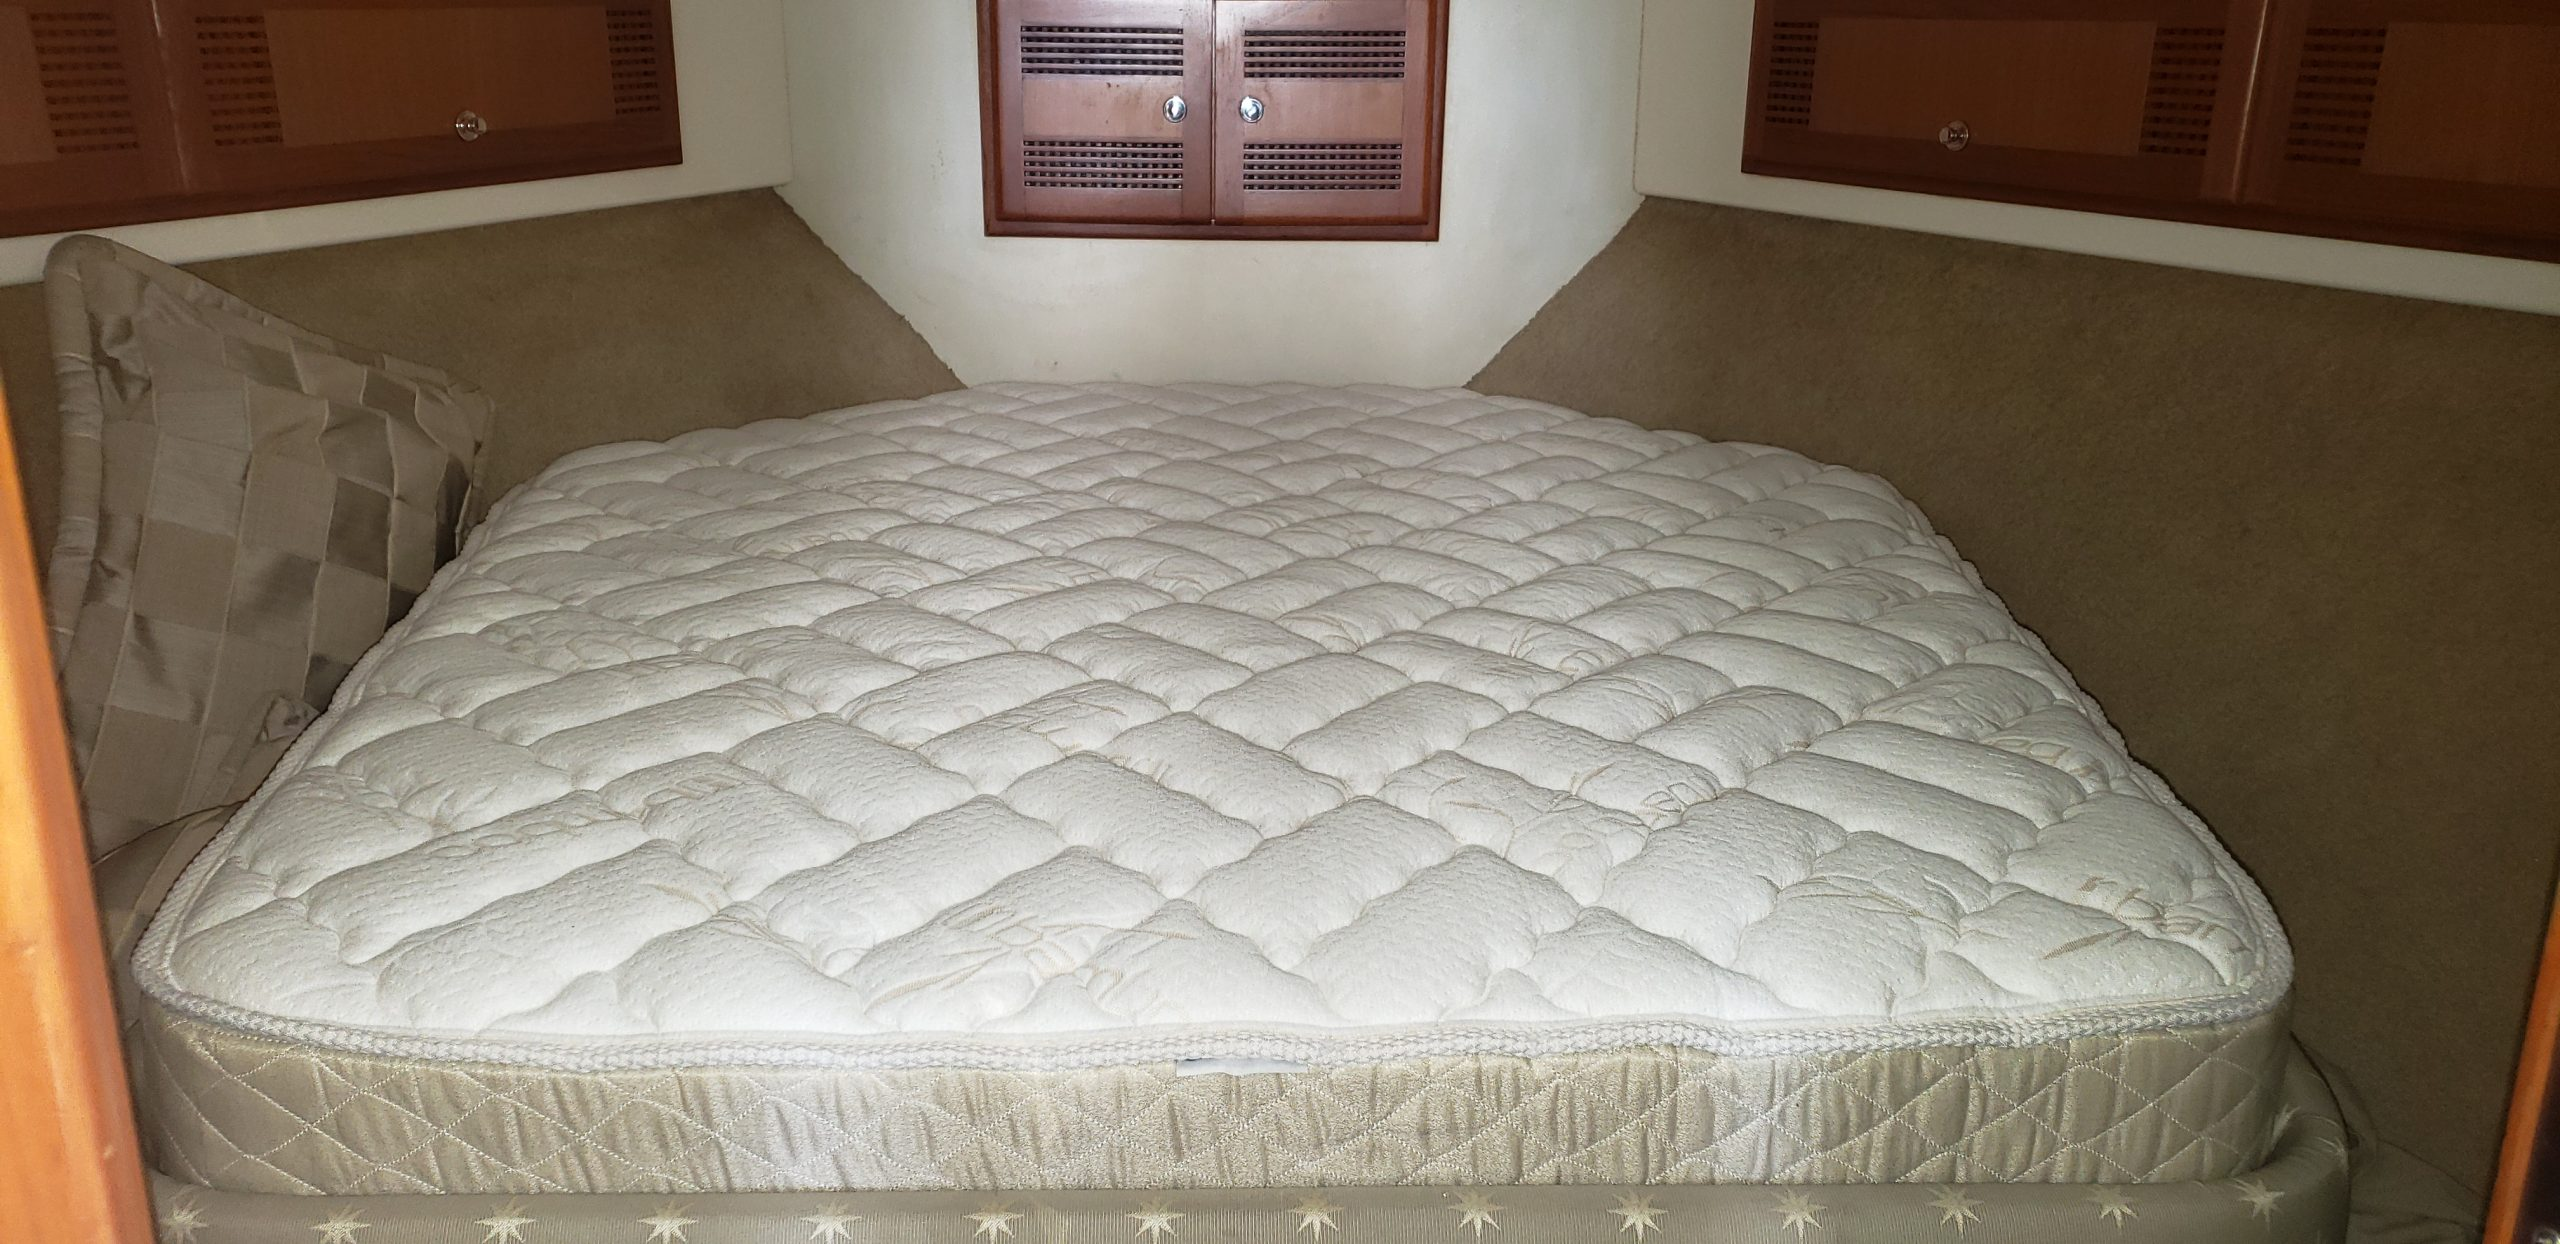 Custom Mattress Australia – Innerspring, Pocketed Coil Or Natural Fibre, Which One To Choose